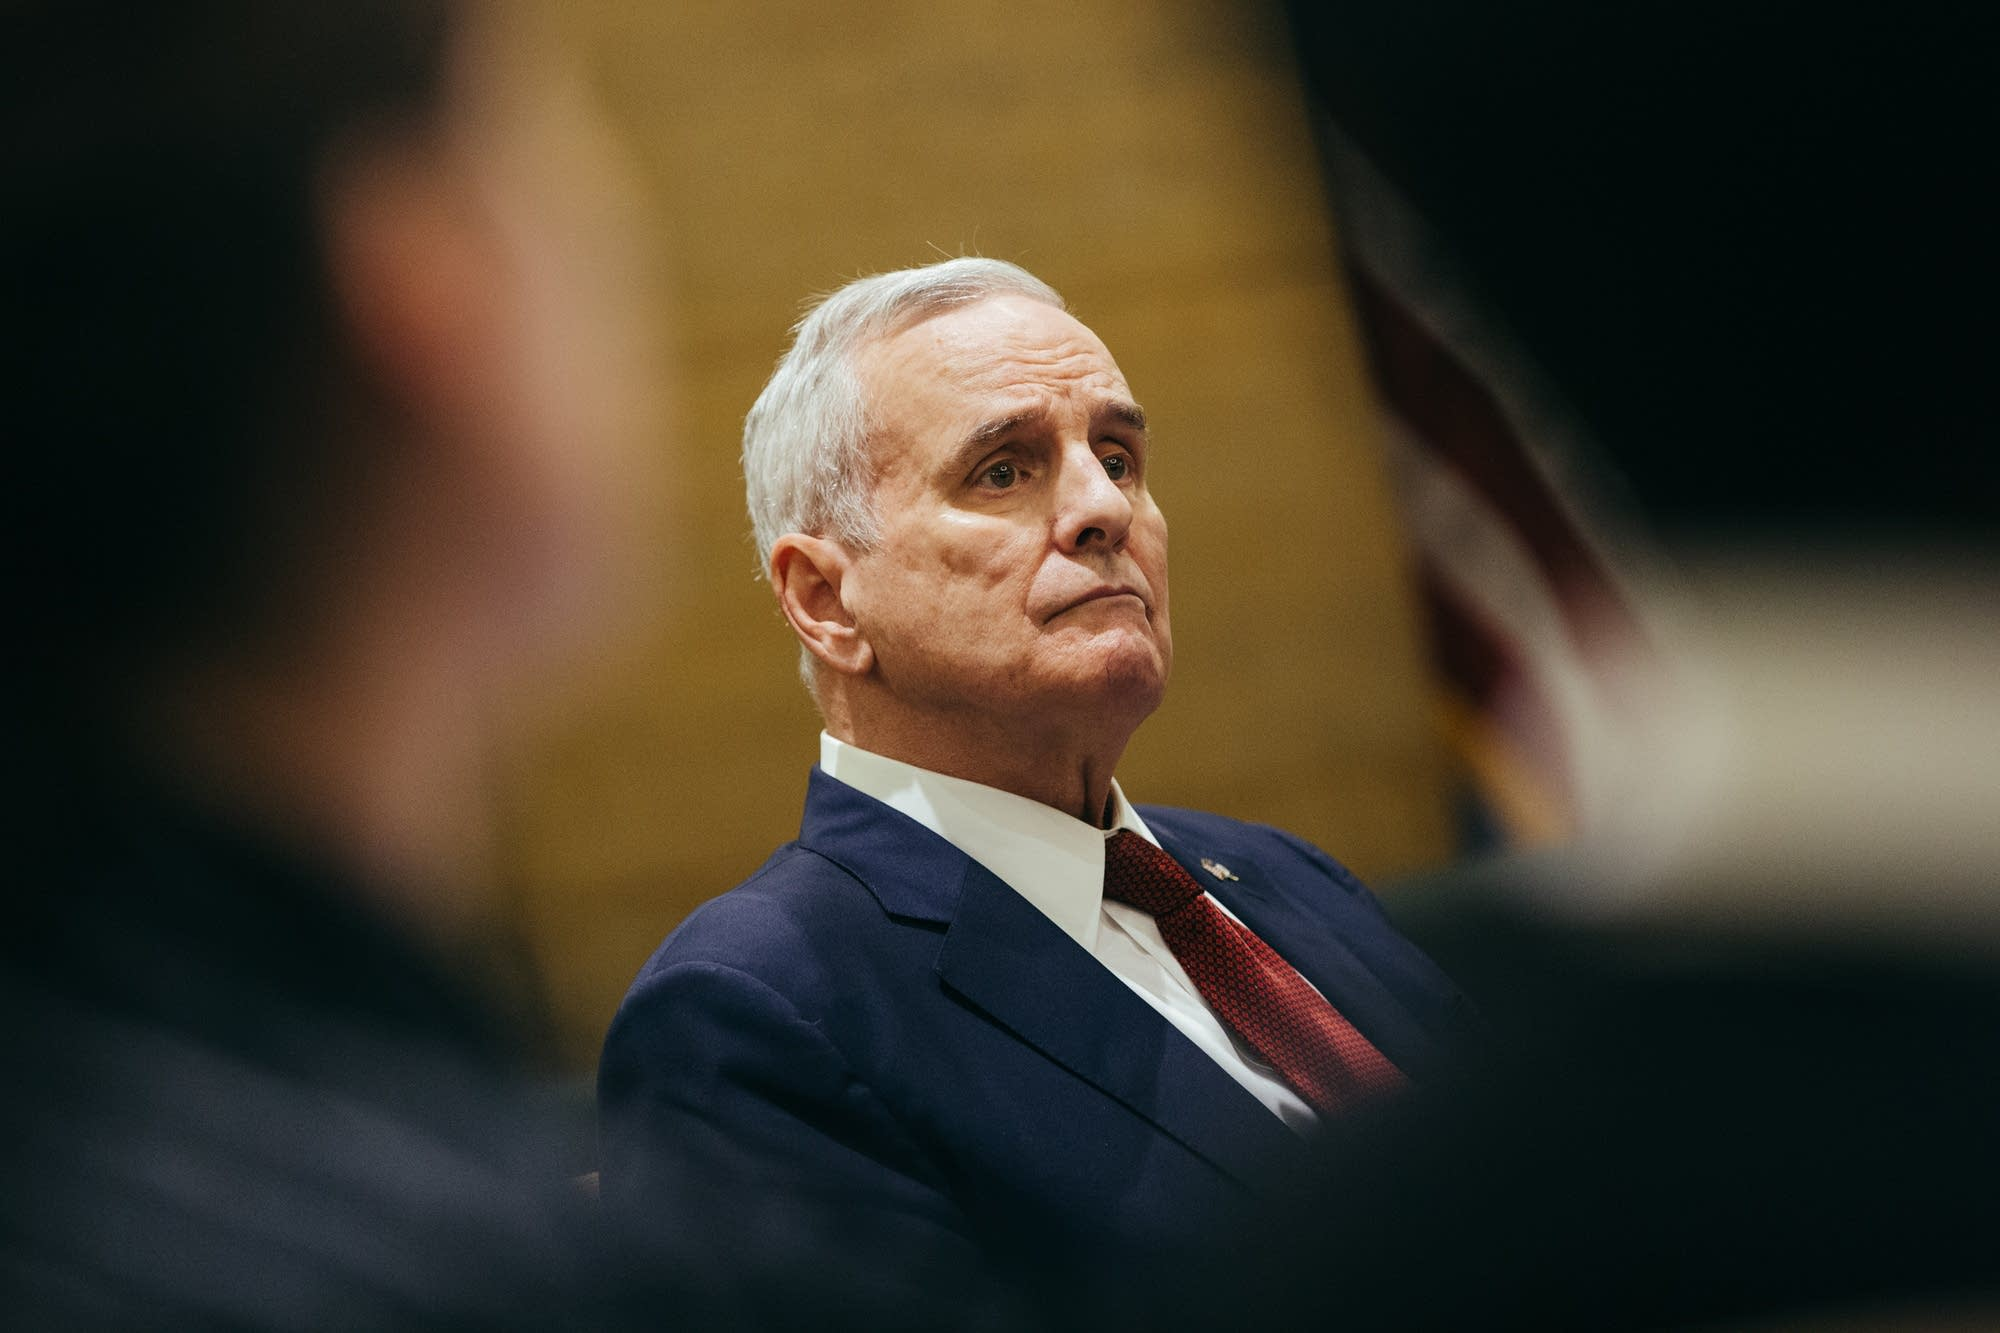 Gov. Mark Dayton told reporters today that he has prostate cancer.